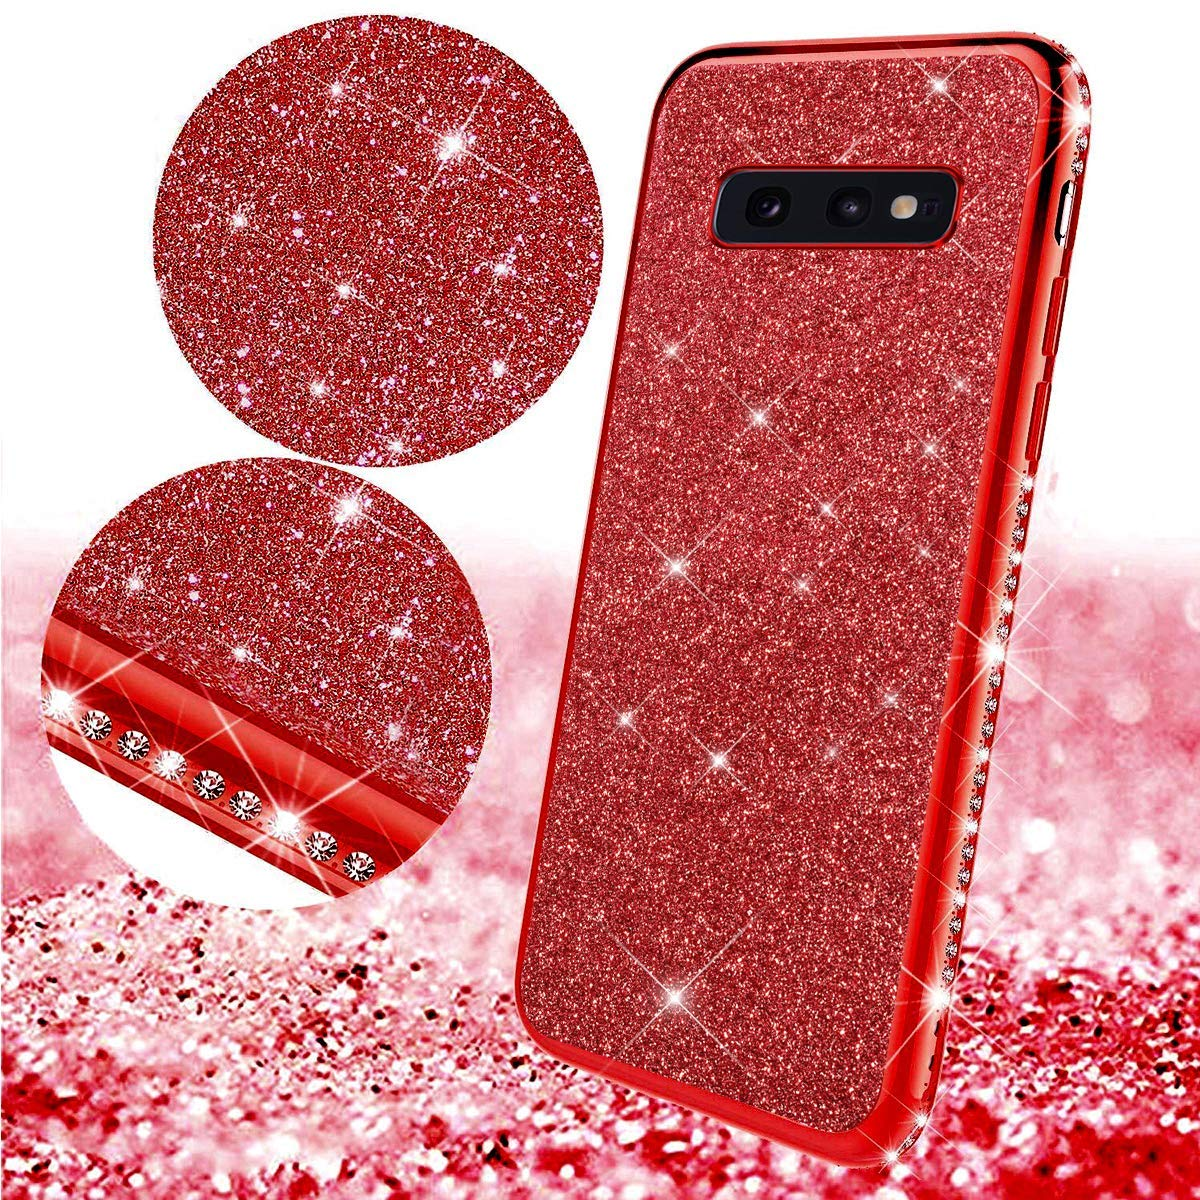 Uposao Compatible with Samsung Galaxy S10e Case Glitter Cute Girl Women Bling Crystal Diamond Rhinestone Clear Protective Phone Case Cover Shockproof TPU Rubber Silicone Cover,Rose Gold